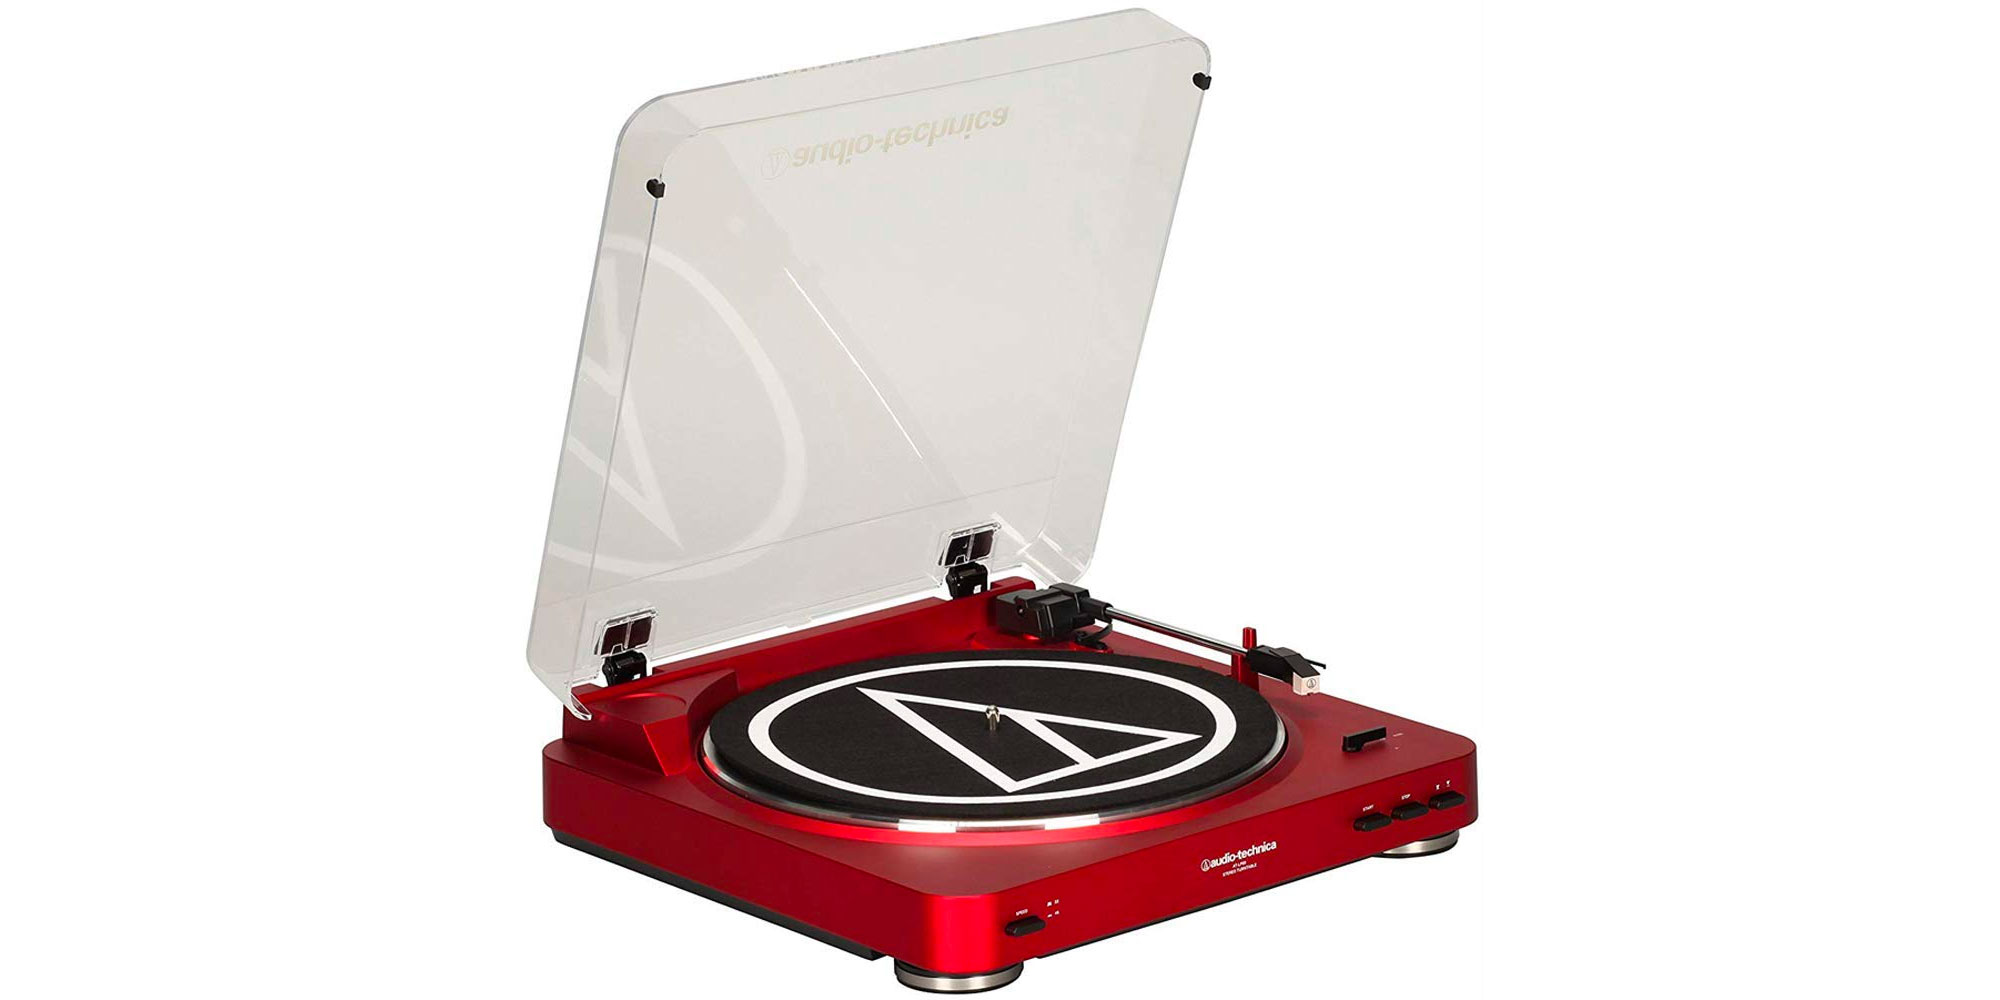 Audio-Technica LP60 Turntable for $78 or with Bluetooth for $88 ($130+ value) - 9to5Toys